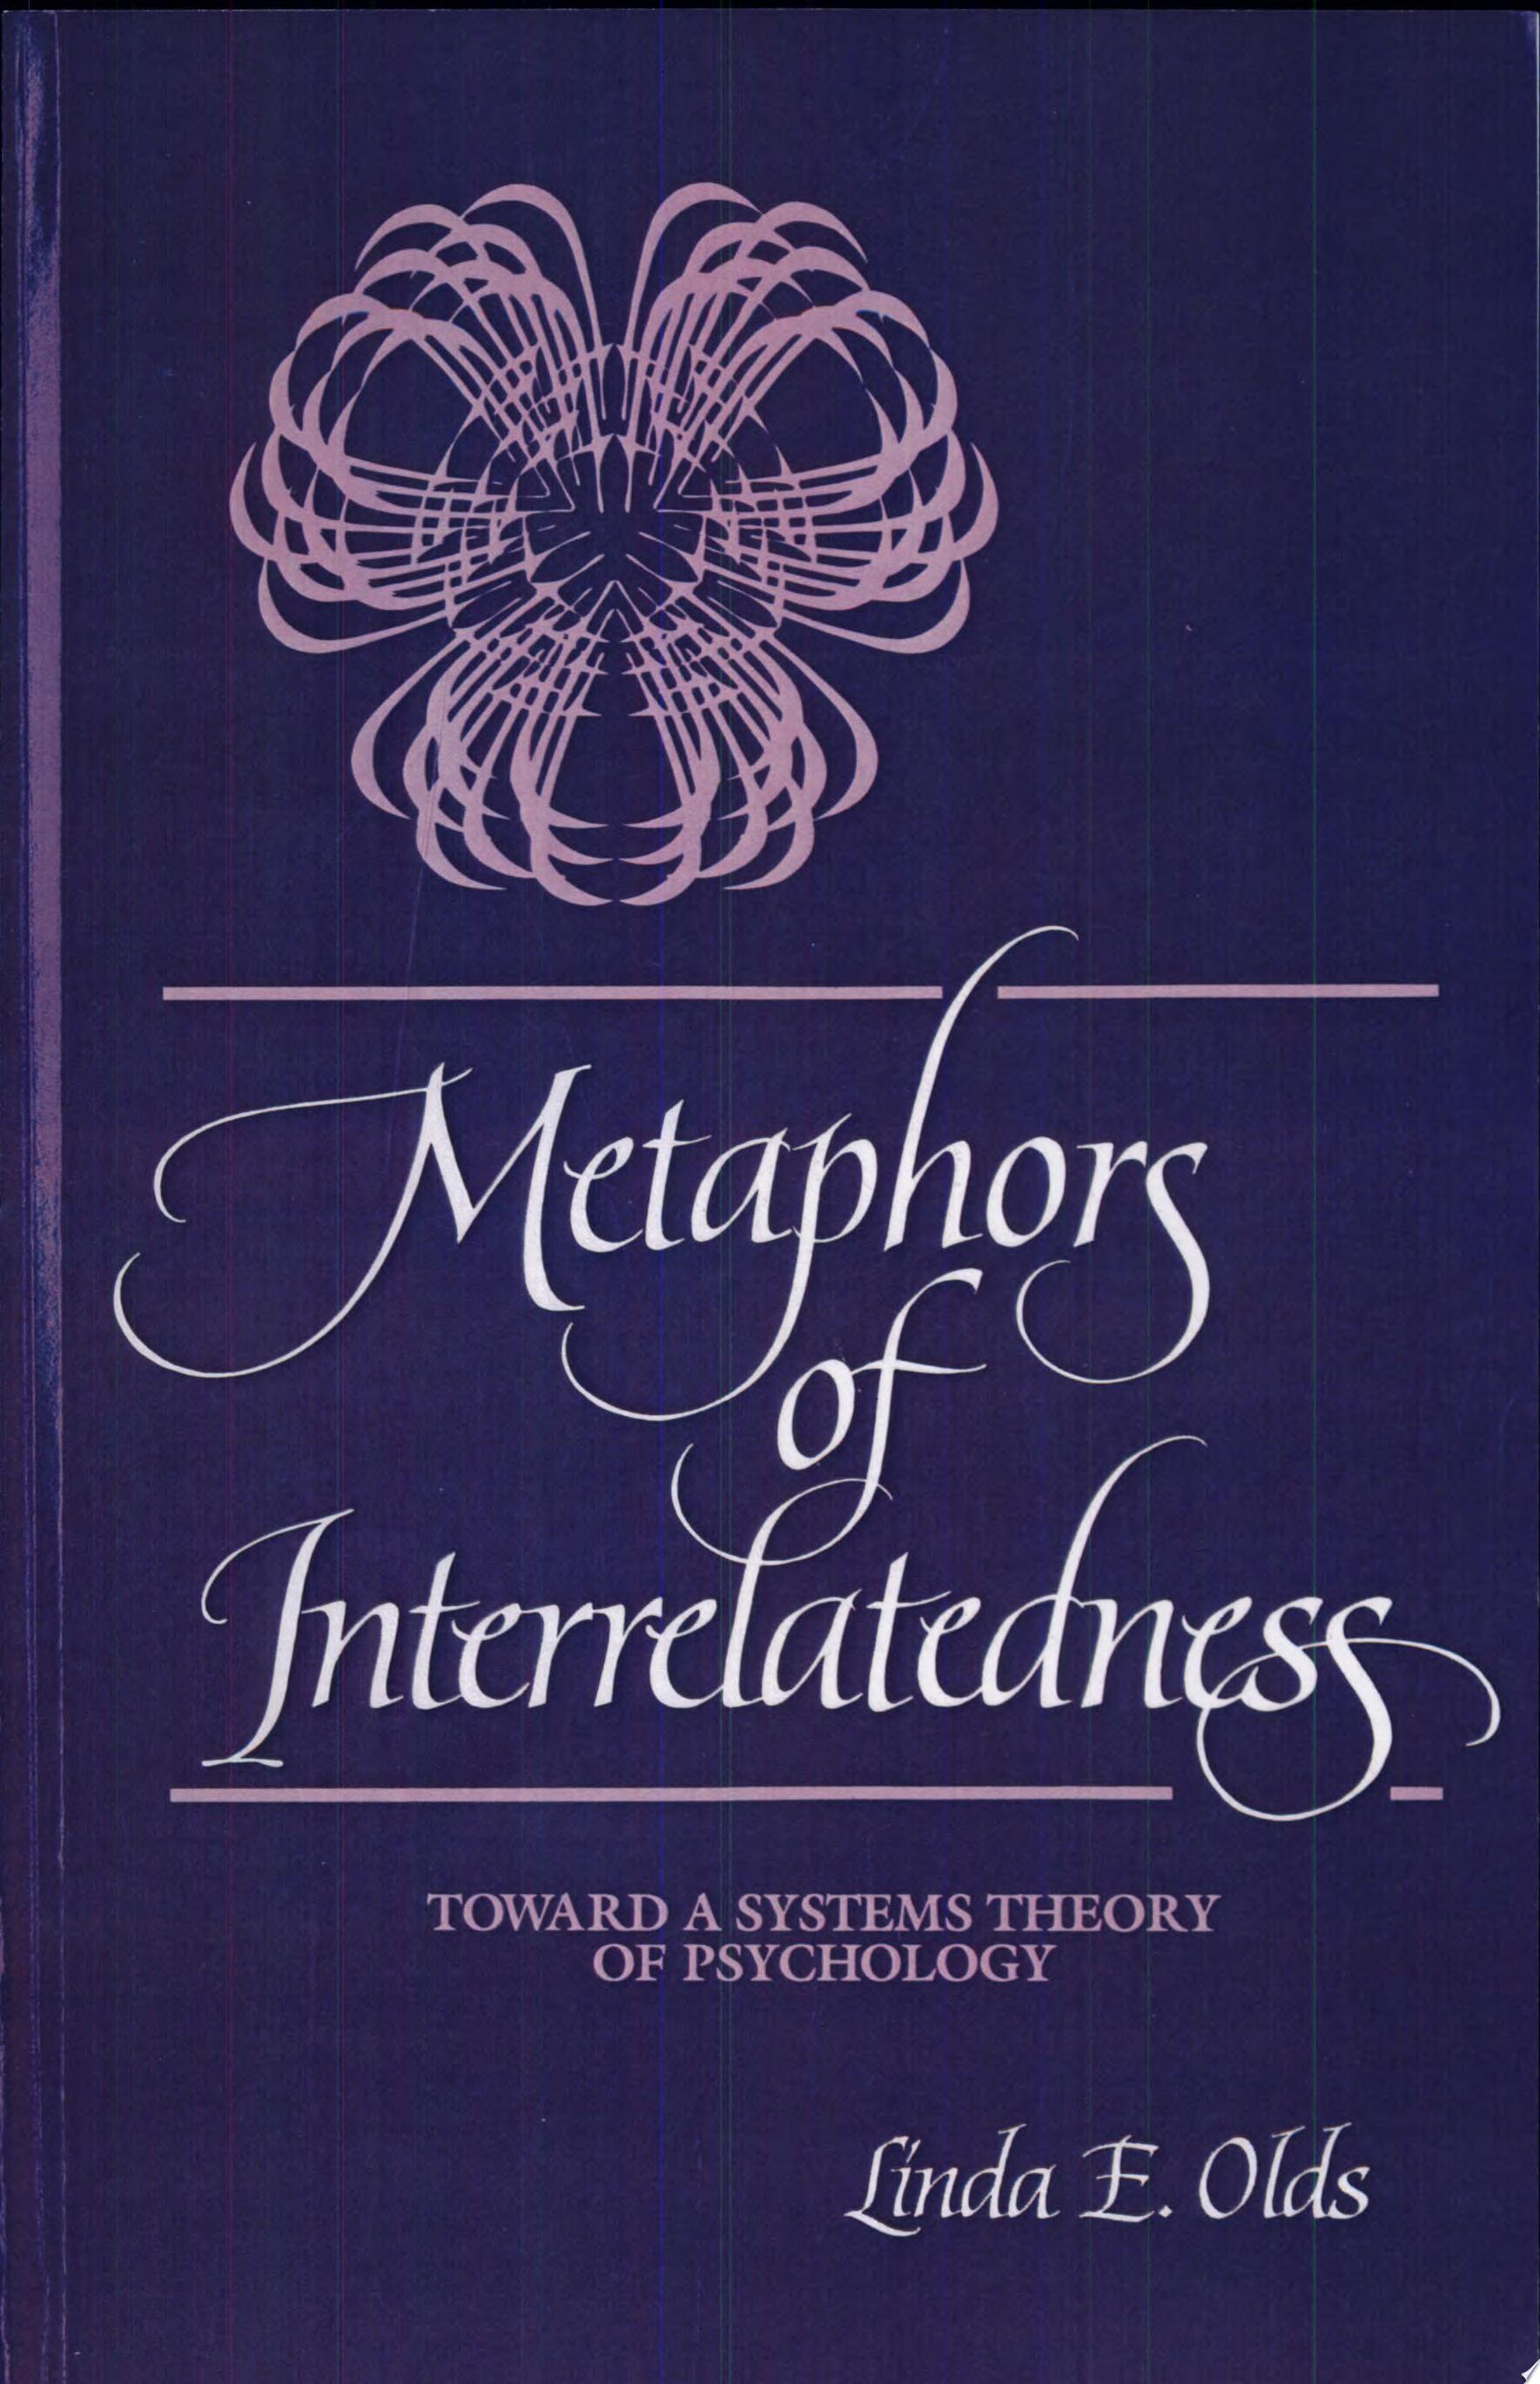 Metaphors of Interrelatedness